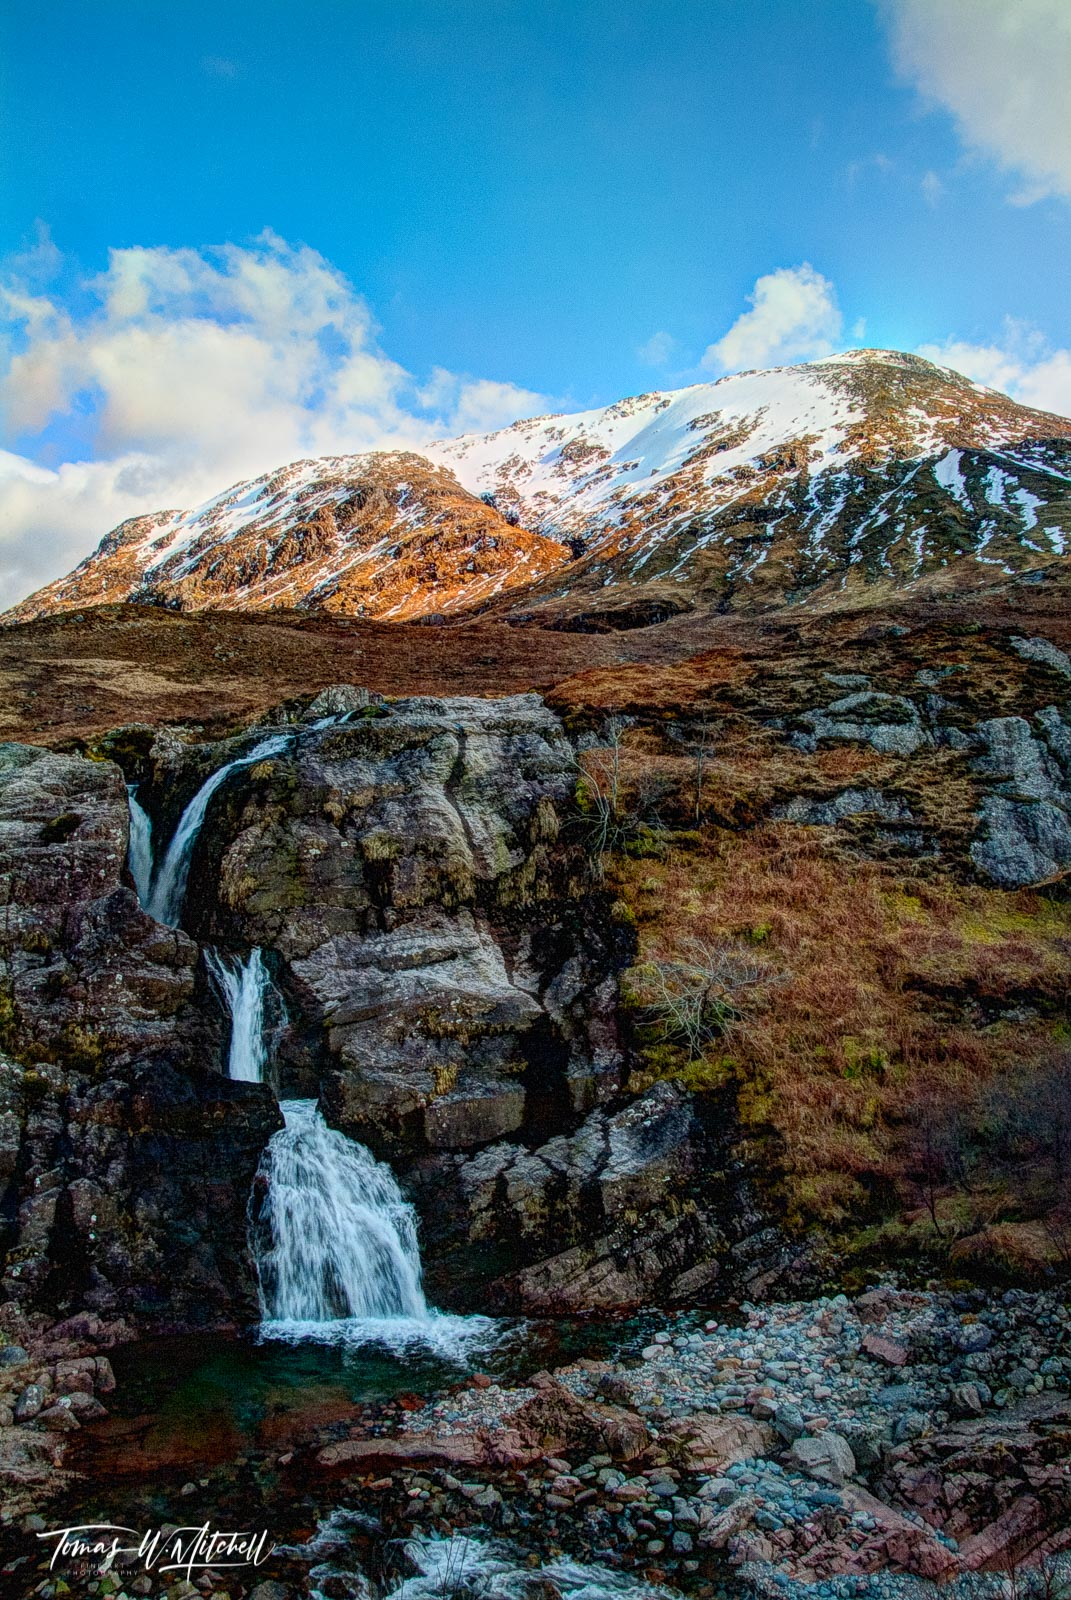 limited edition, museum grade, fine art, prints, glen coe, scotland, meeting of the three waters, waterfall, water, snow capped, mountaintop, blue sky, clouds, landscape, photographs, photo